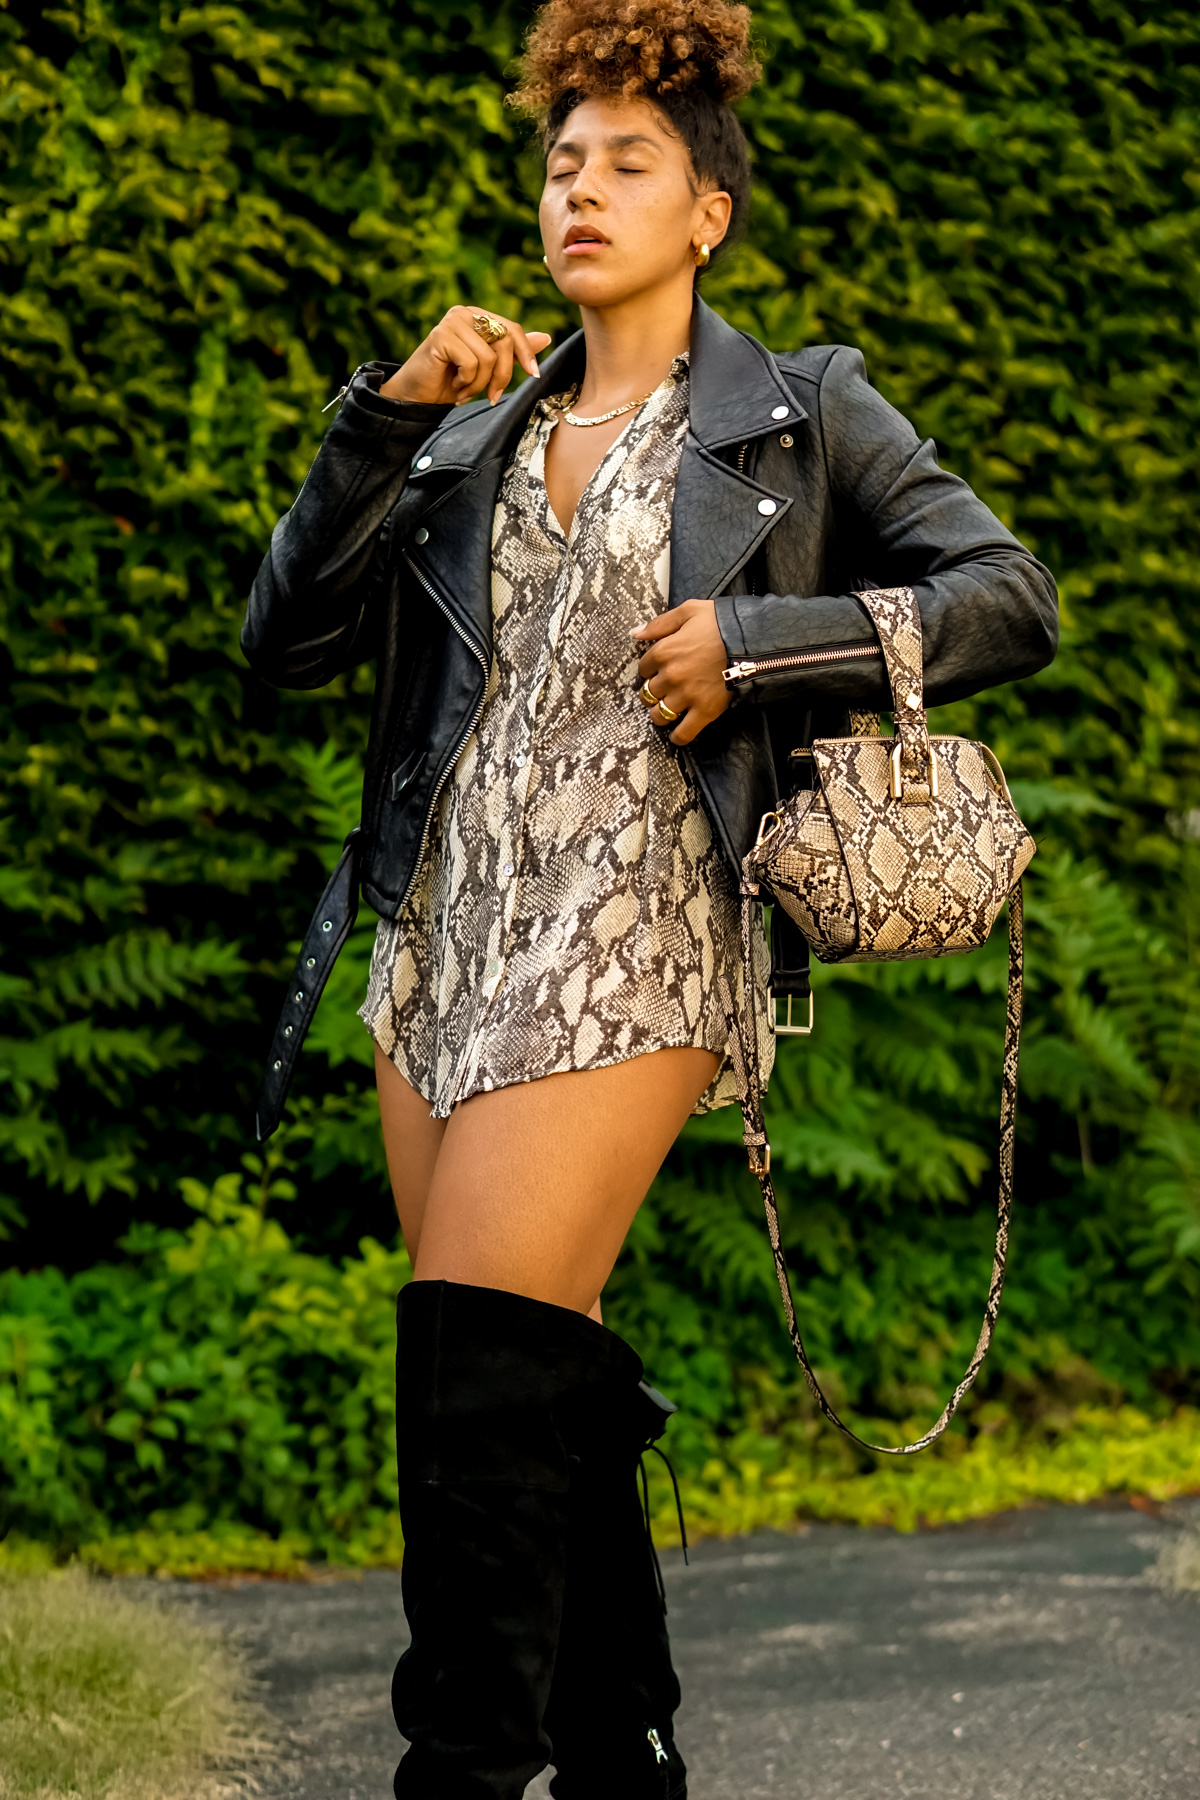 snake print dress outfit, chic fall outfit ideas for women, latest fashion trends for women, black fashion bloggers inspiration, chic snake print shirt outfit ideas black girl